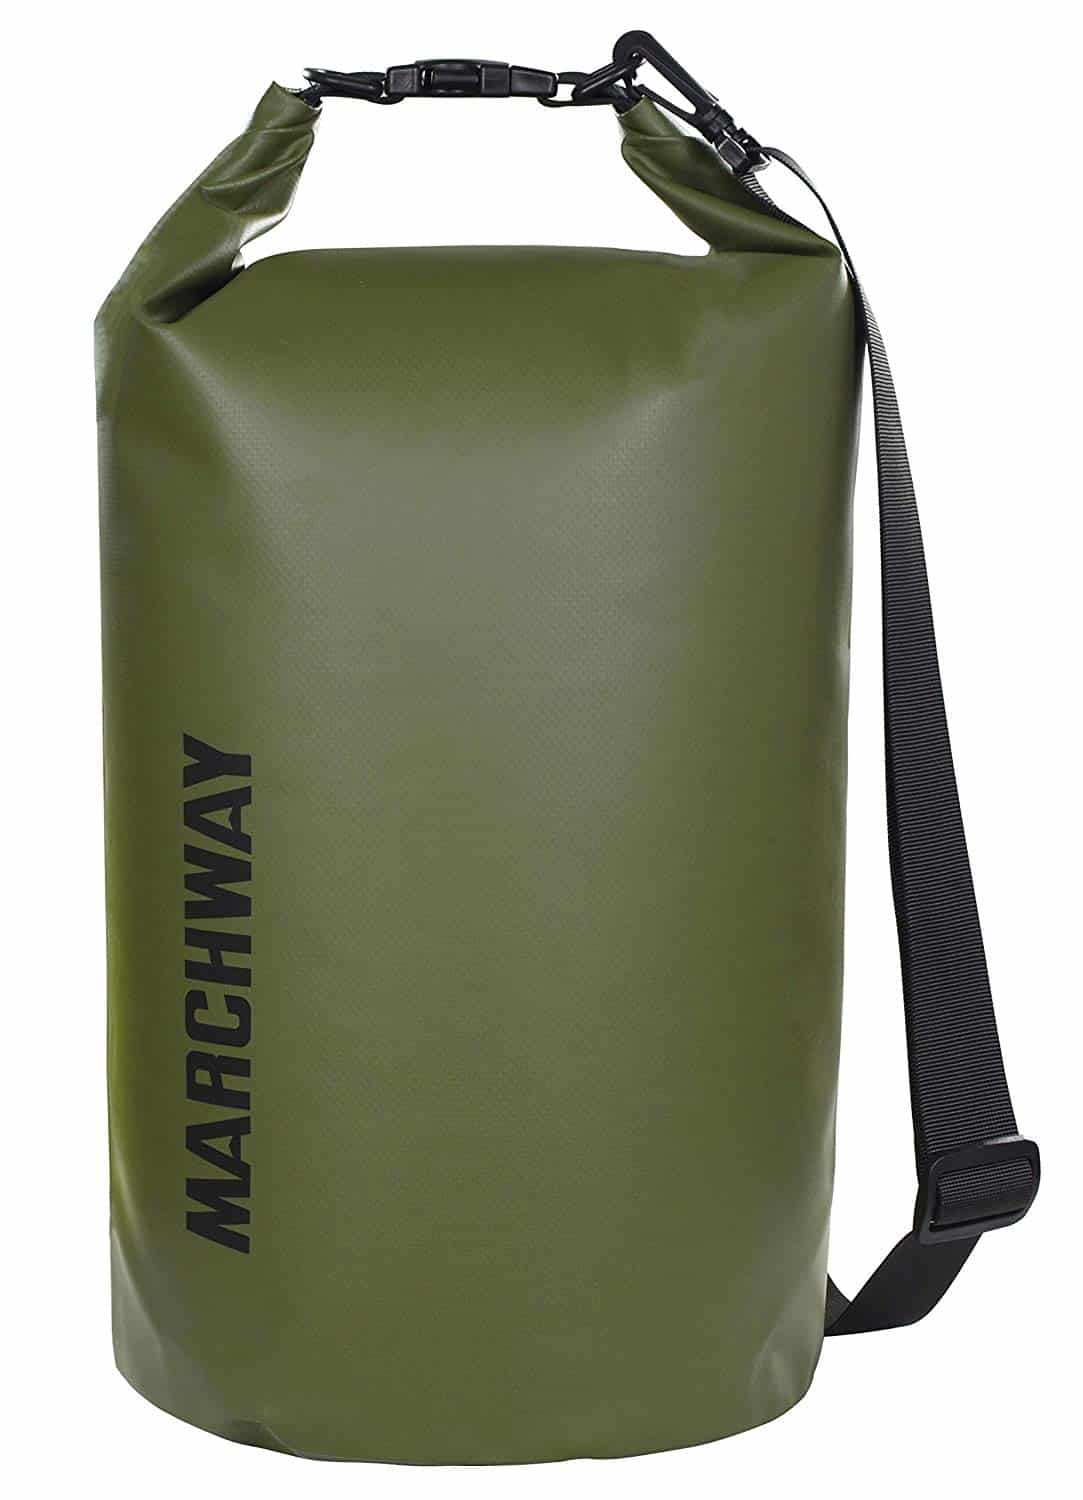 Waterproof Floating Marchway Bag